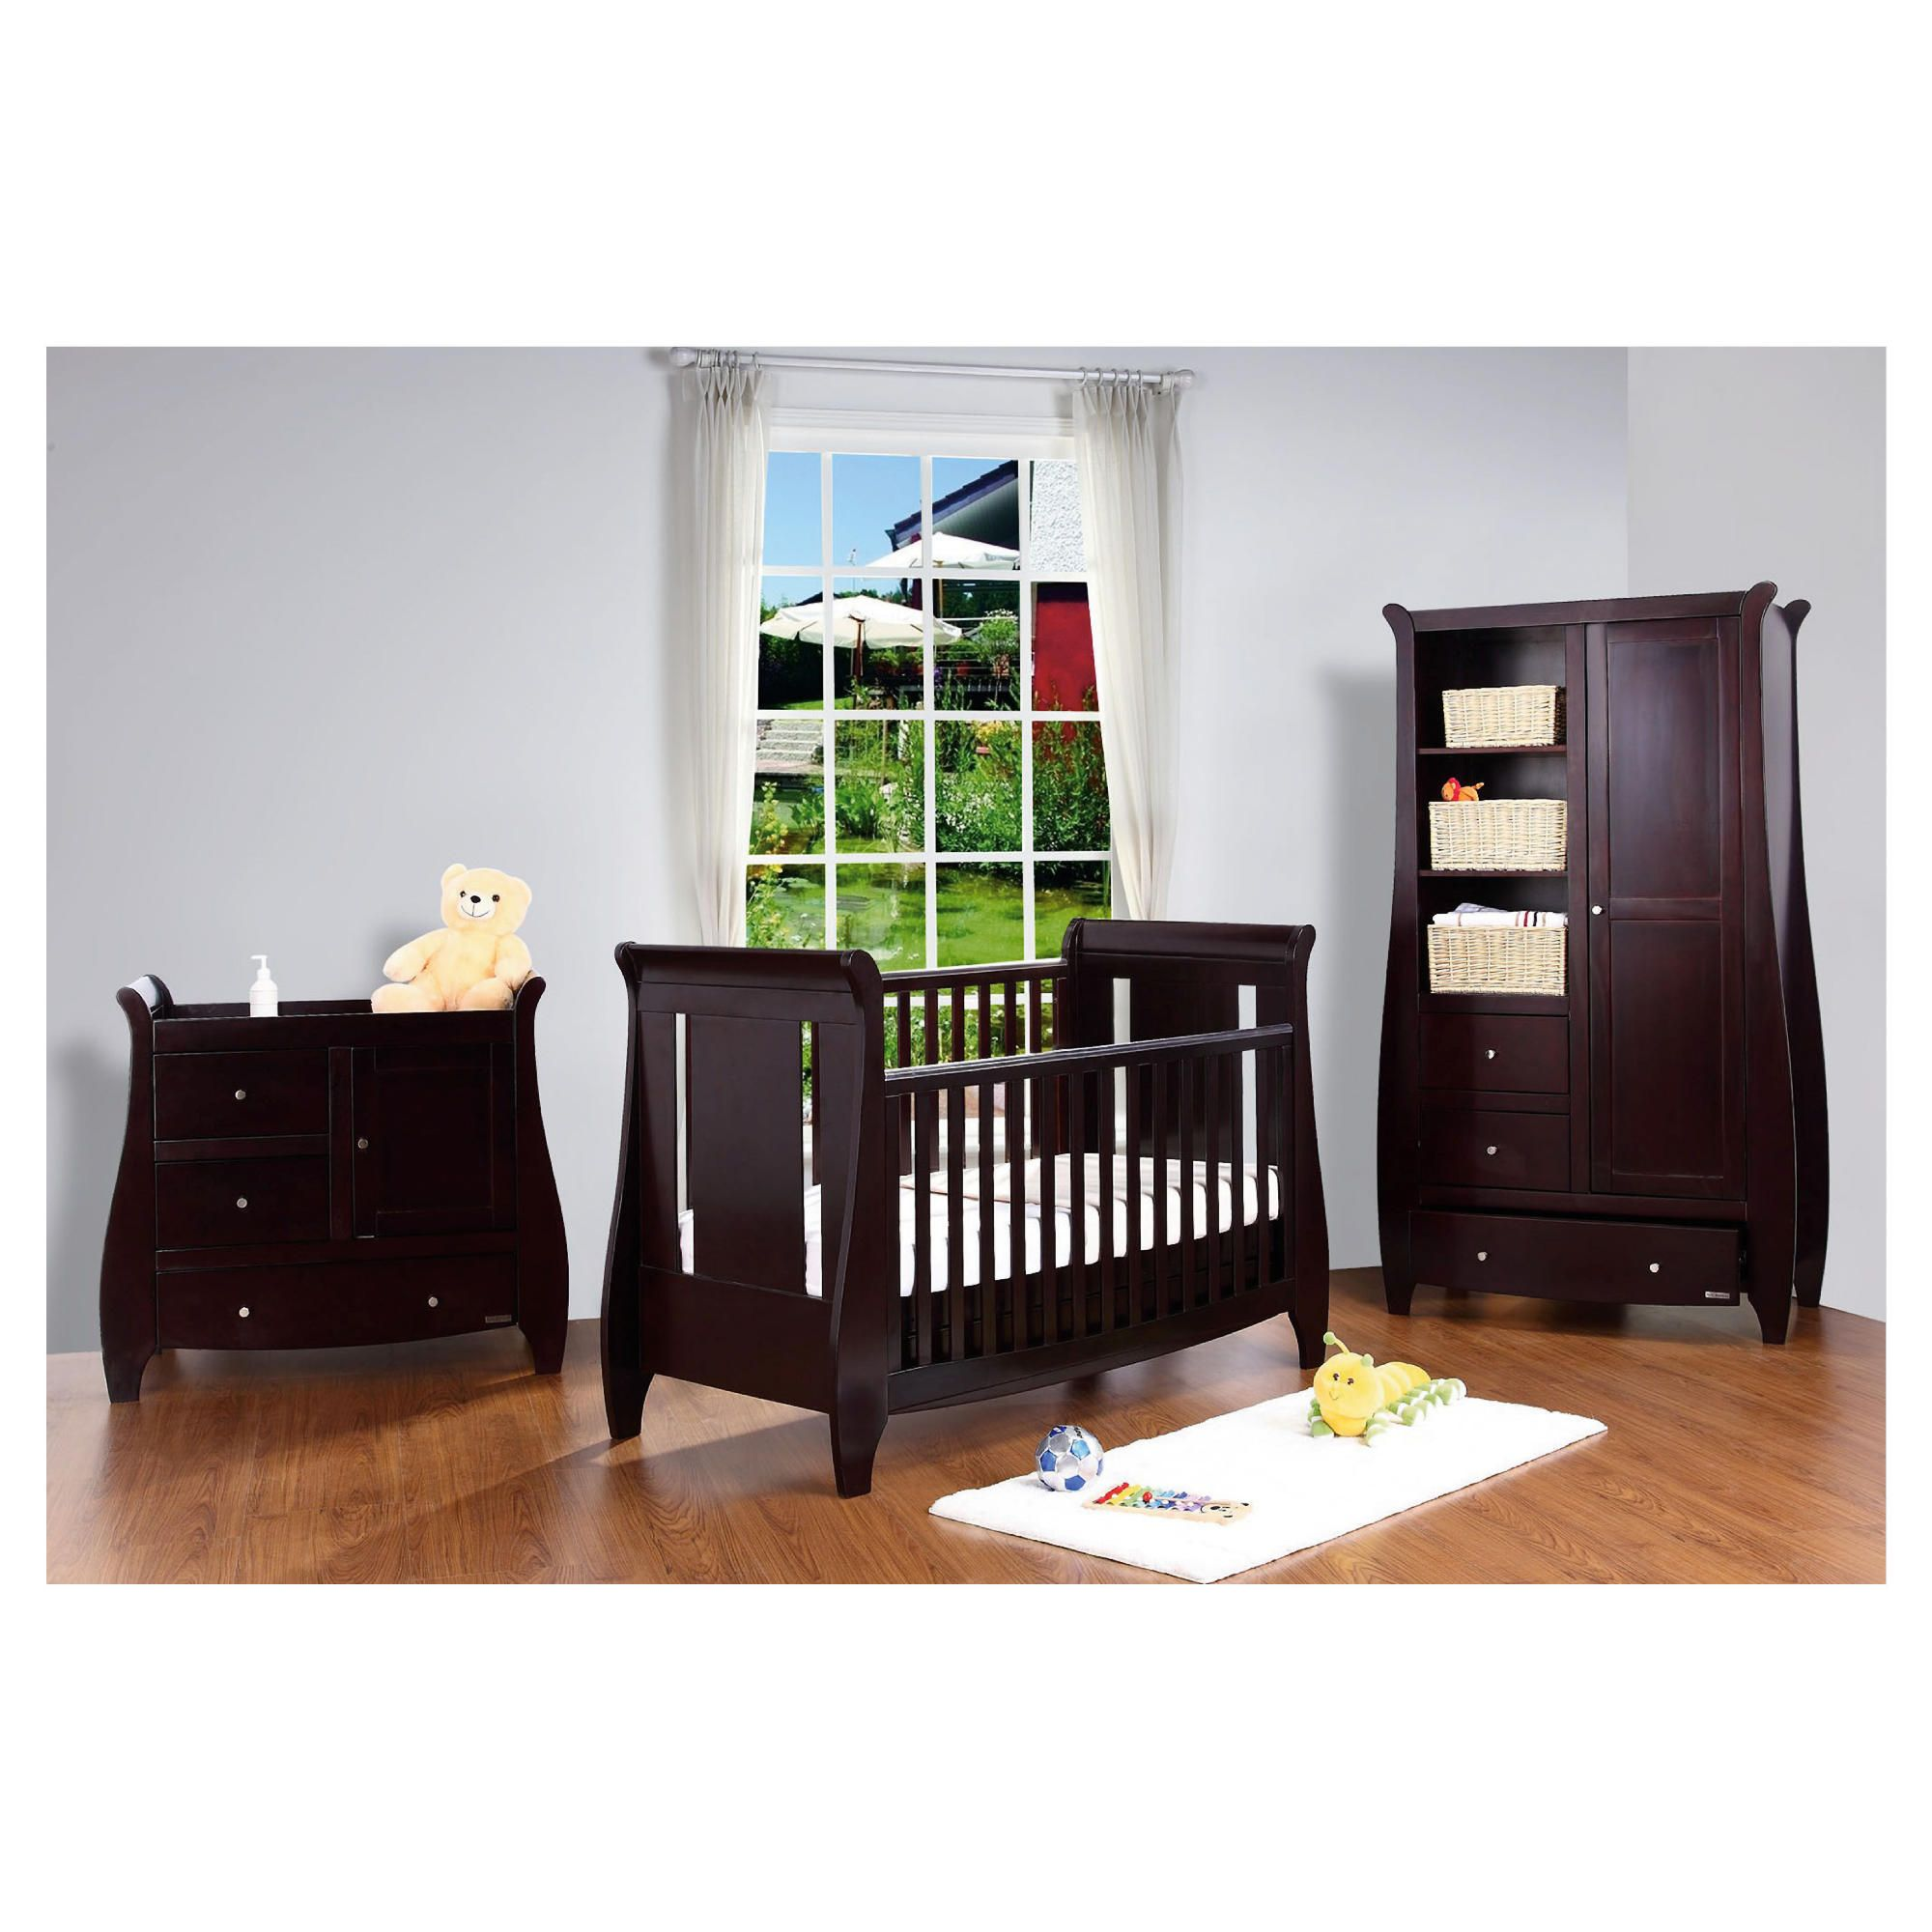 Tutti Bambini Lucas 3 Piece Room Set, Espresso with FREE Home Assembly at Tesco Direct